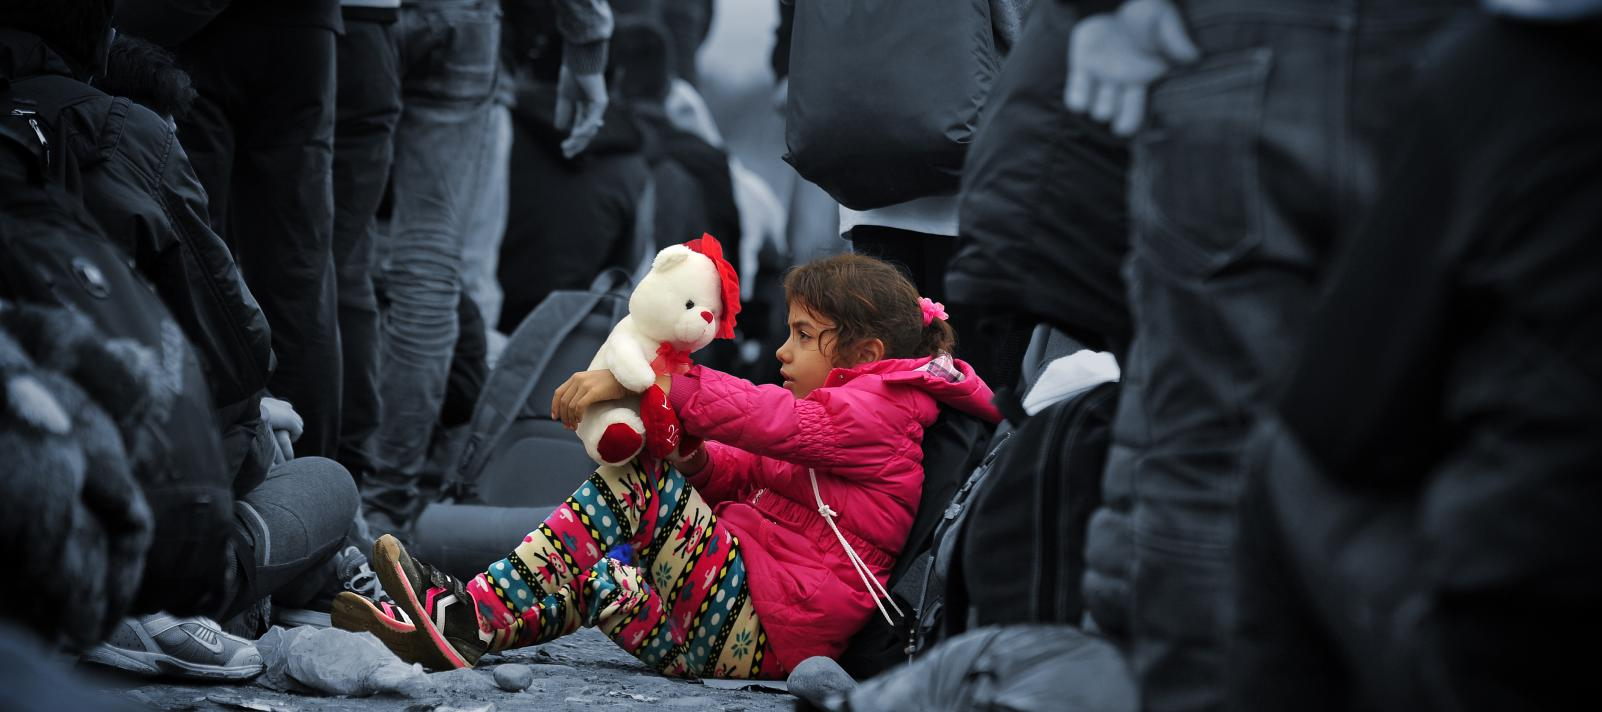 Girl sits on the ground holding her teddy bear